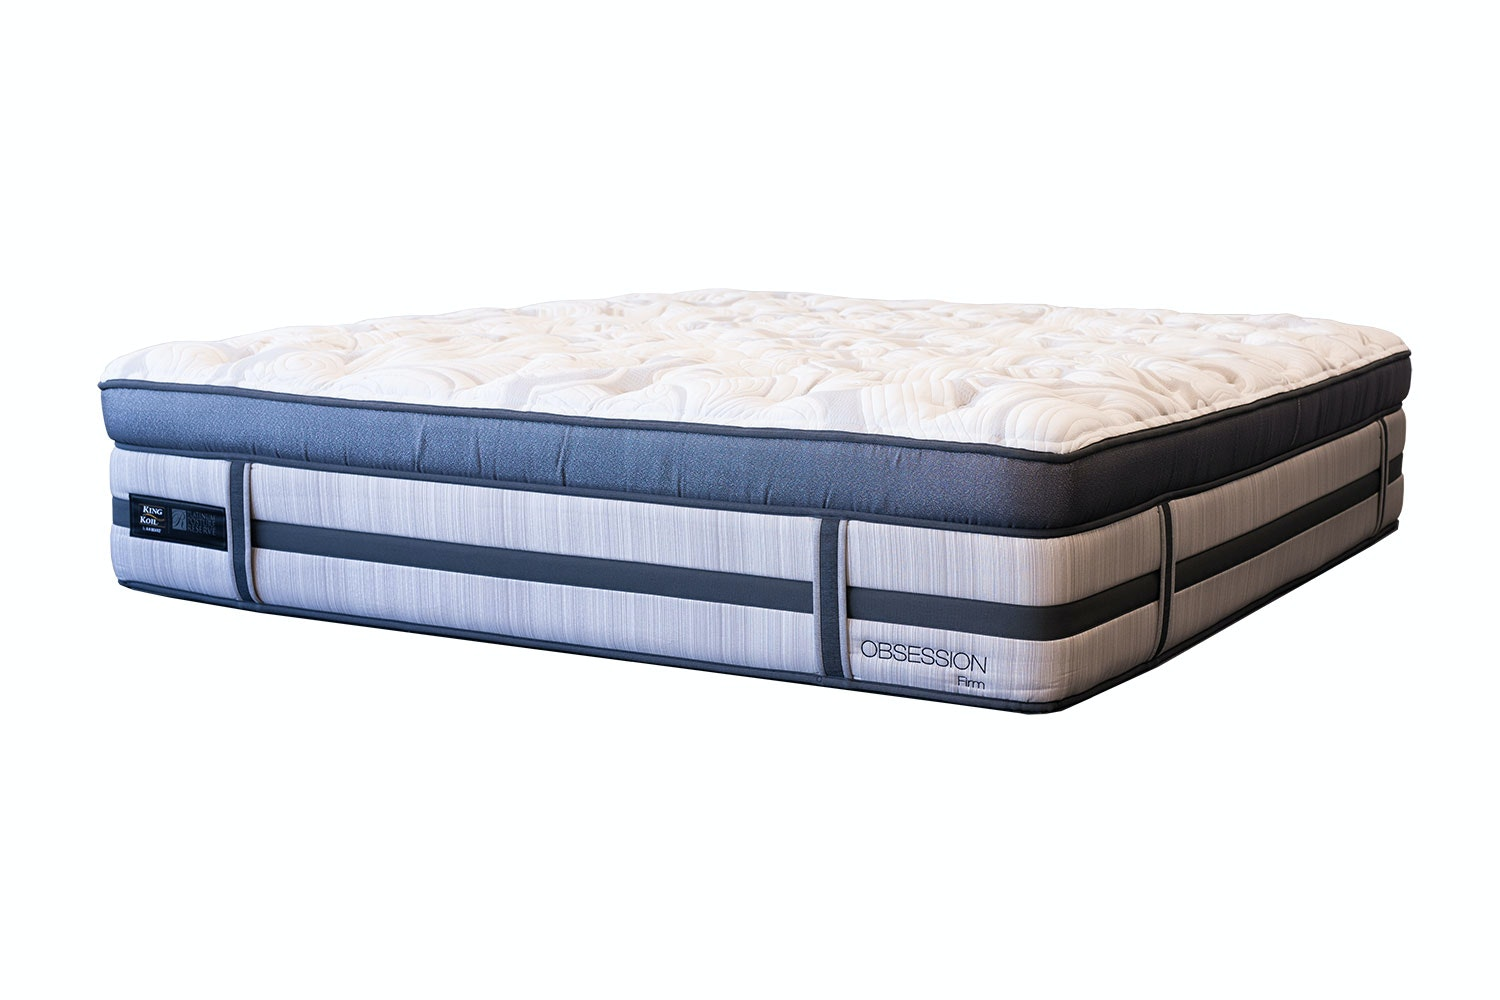 Obsession Firm Californian King Mattress by King Koil